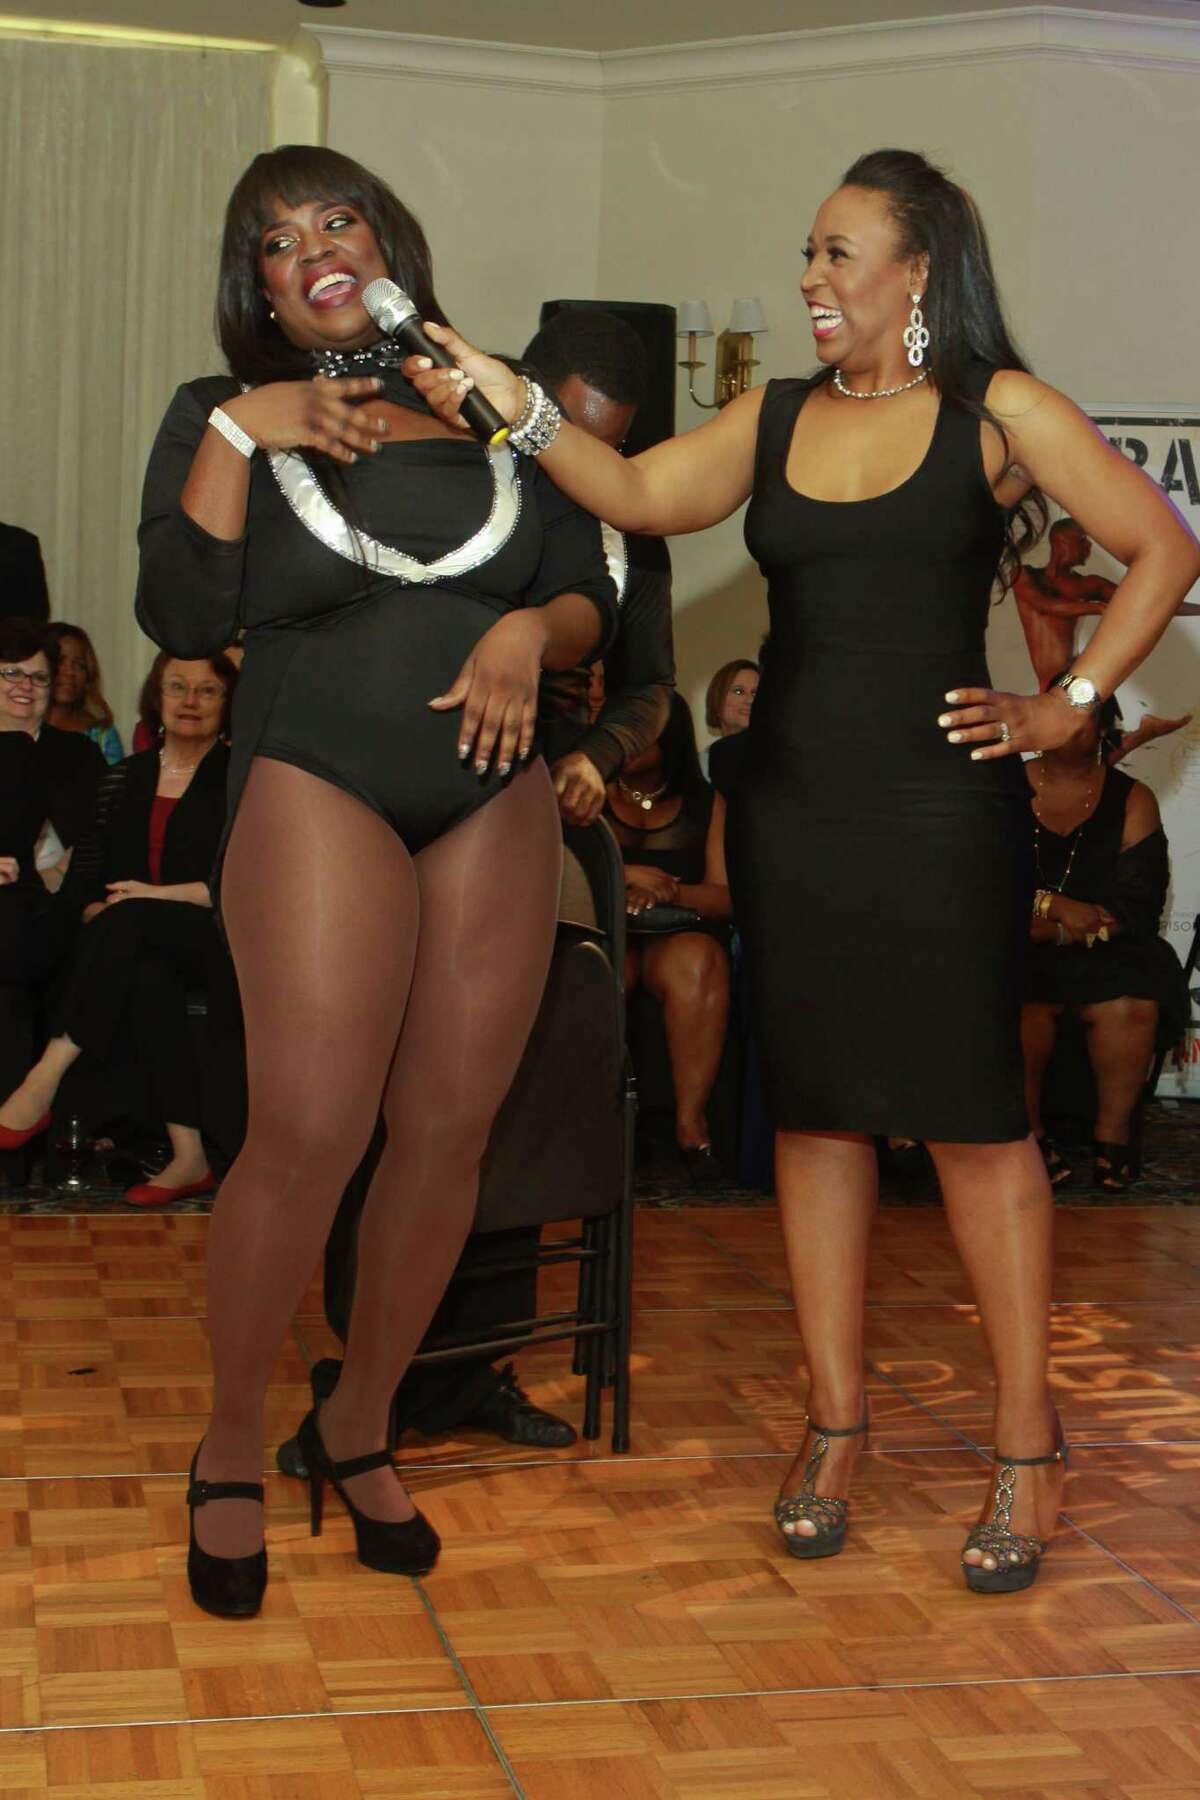 """(For the Chronicle/Gary Fountain, May 4, 2014) Nakia Cooper being interviewed by Erica D. Rouse after performing at the Urban Souls Dance Company's 4th annual charity gala and fundraiser """"Dancing with the Houston Stars."""""""